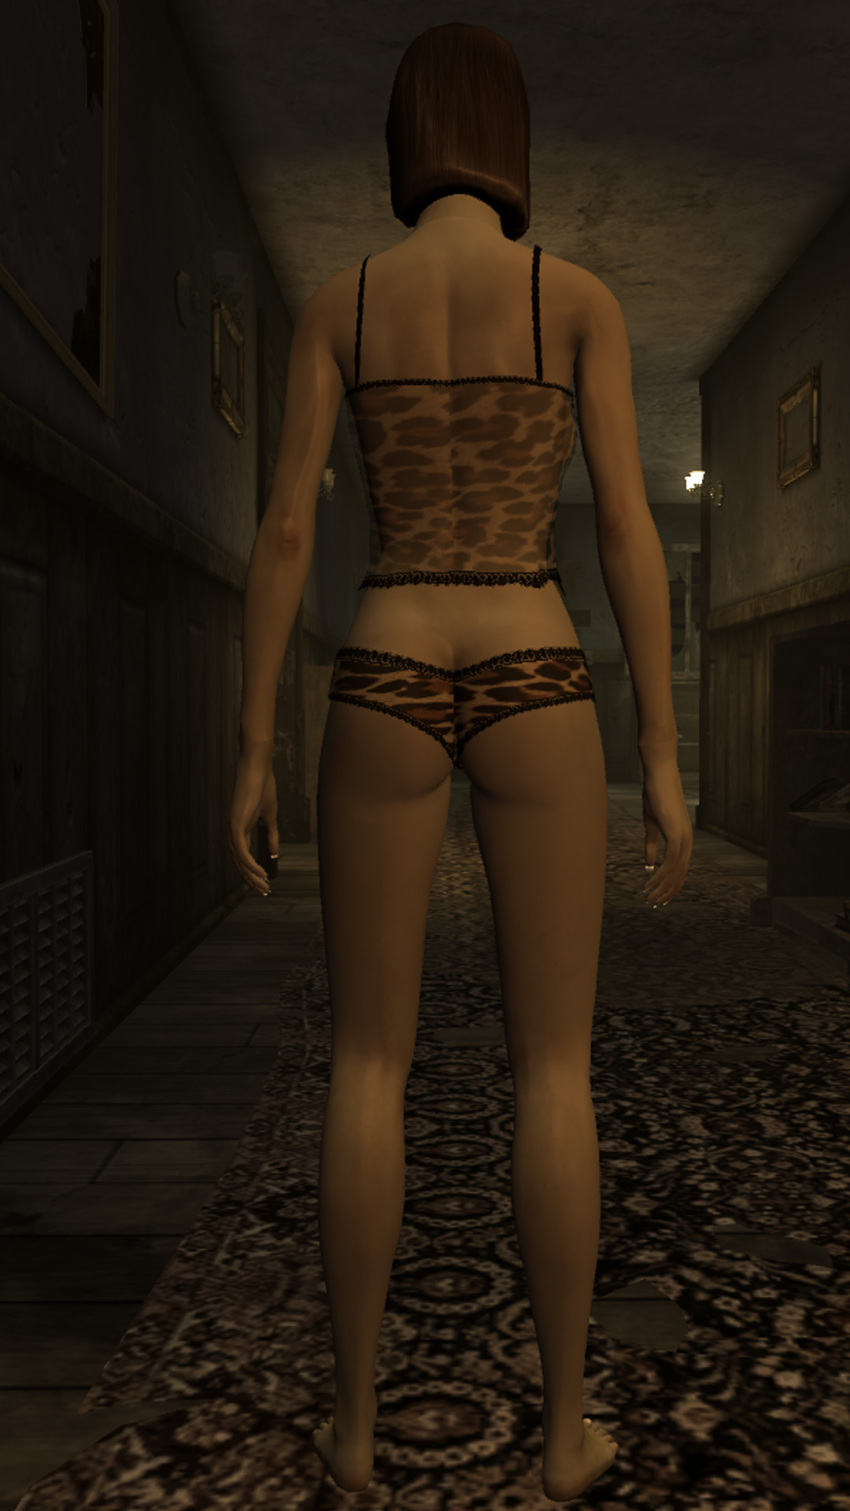 suit chinese new vegas stealth Lord of the rings yaoi